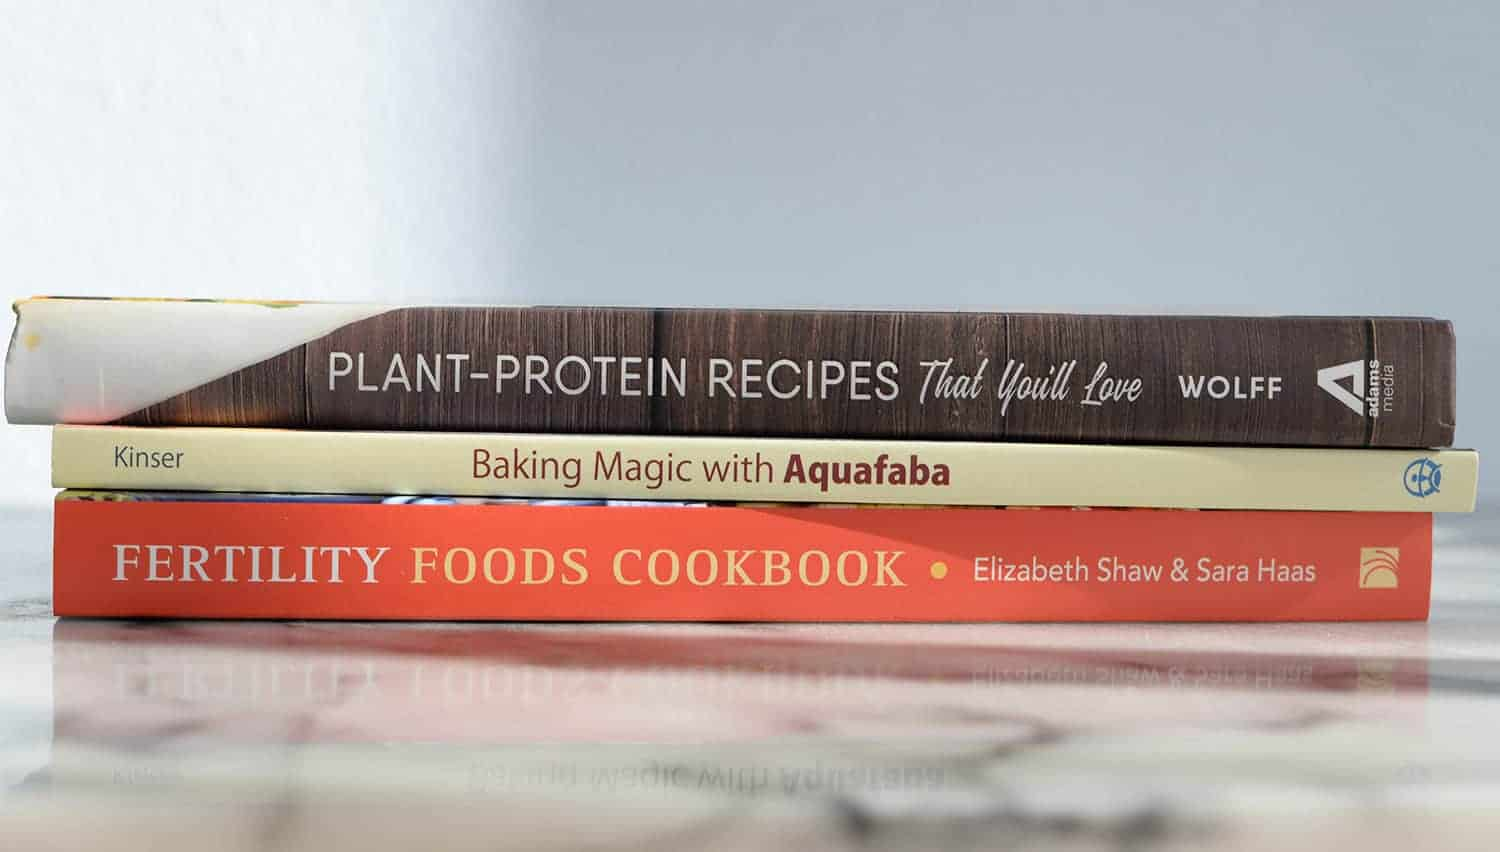 Favorite cookbooks of 2017! Mostly #vegan and #vegetarian selections.